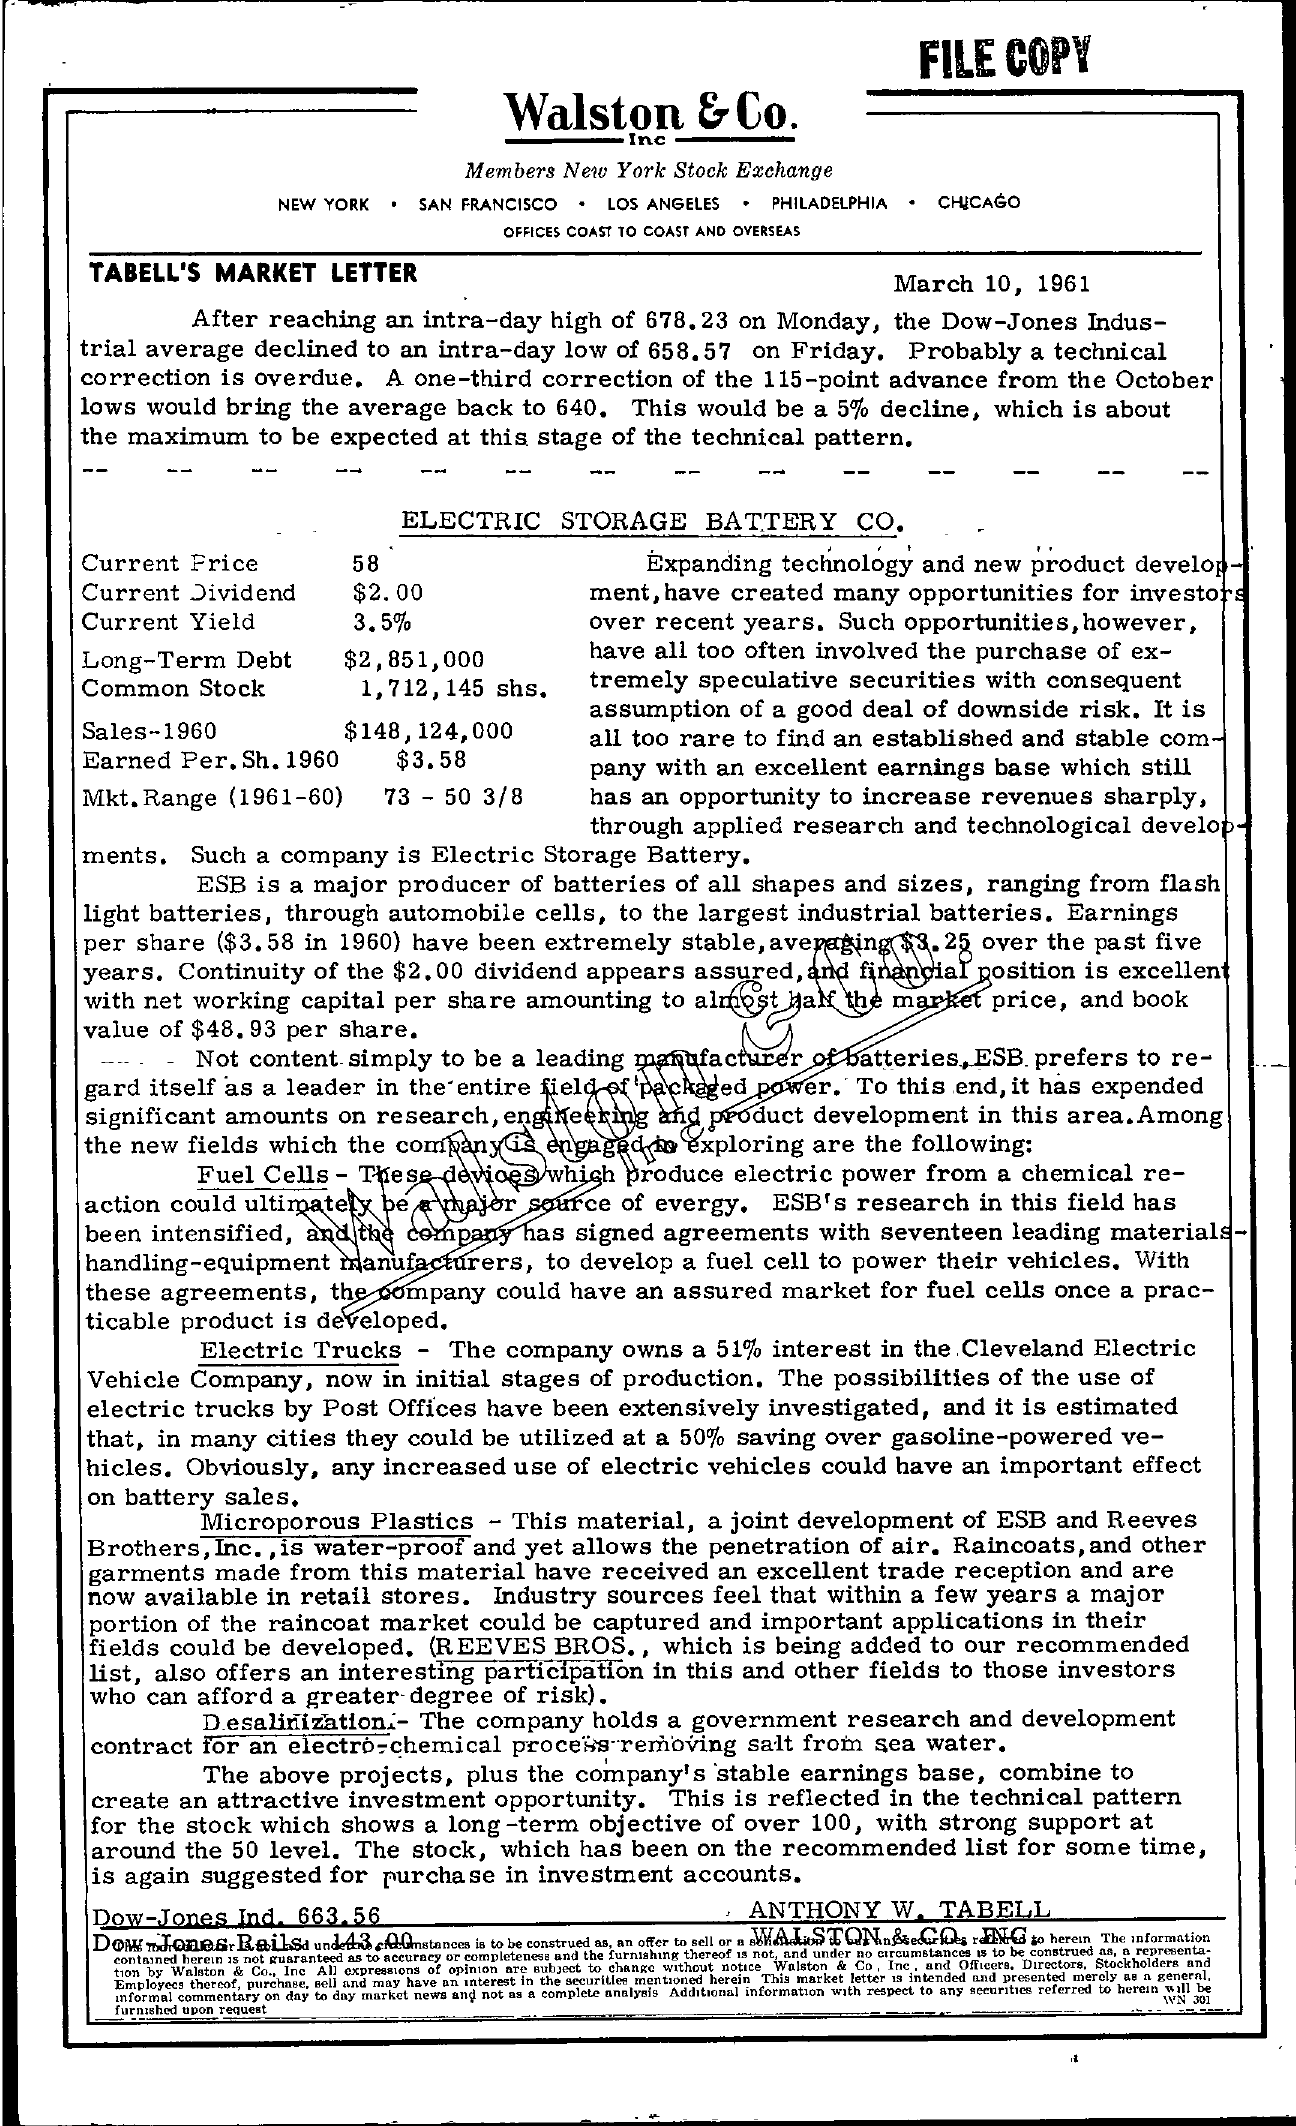 Tabell's Market Letter - March 10, 1961